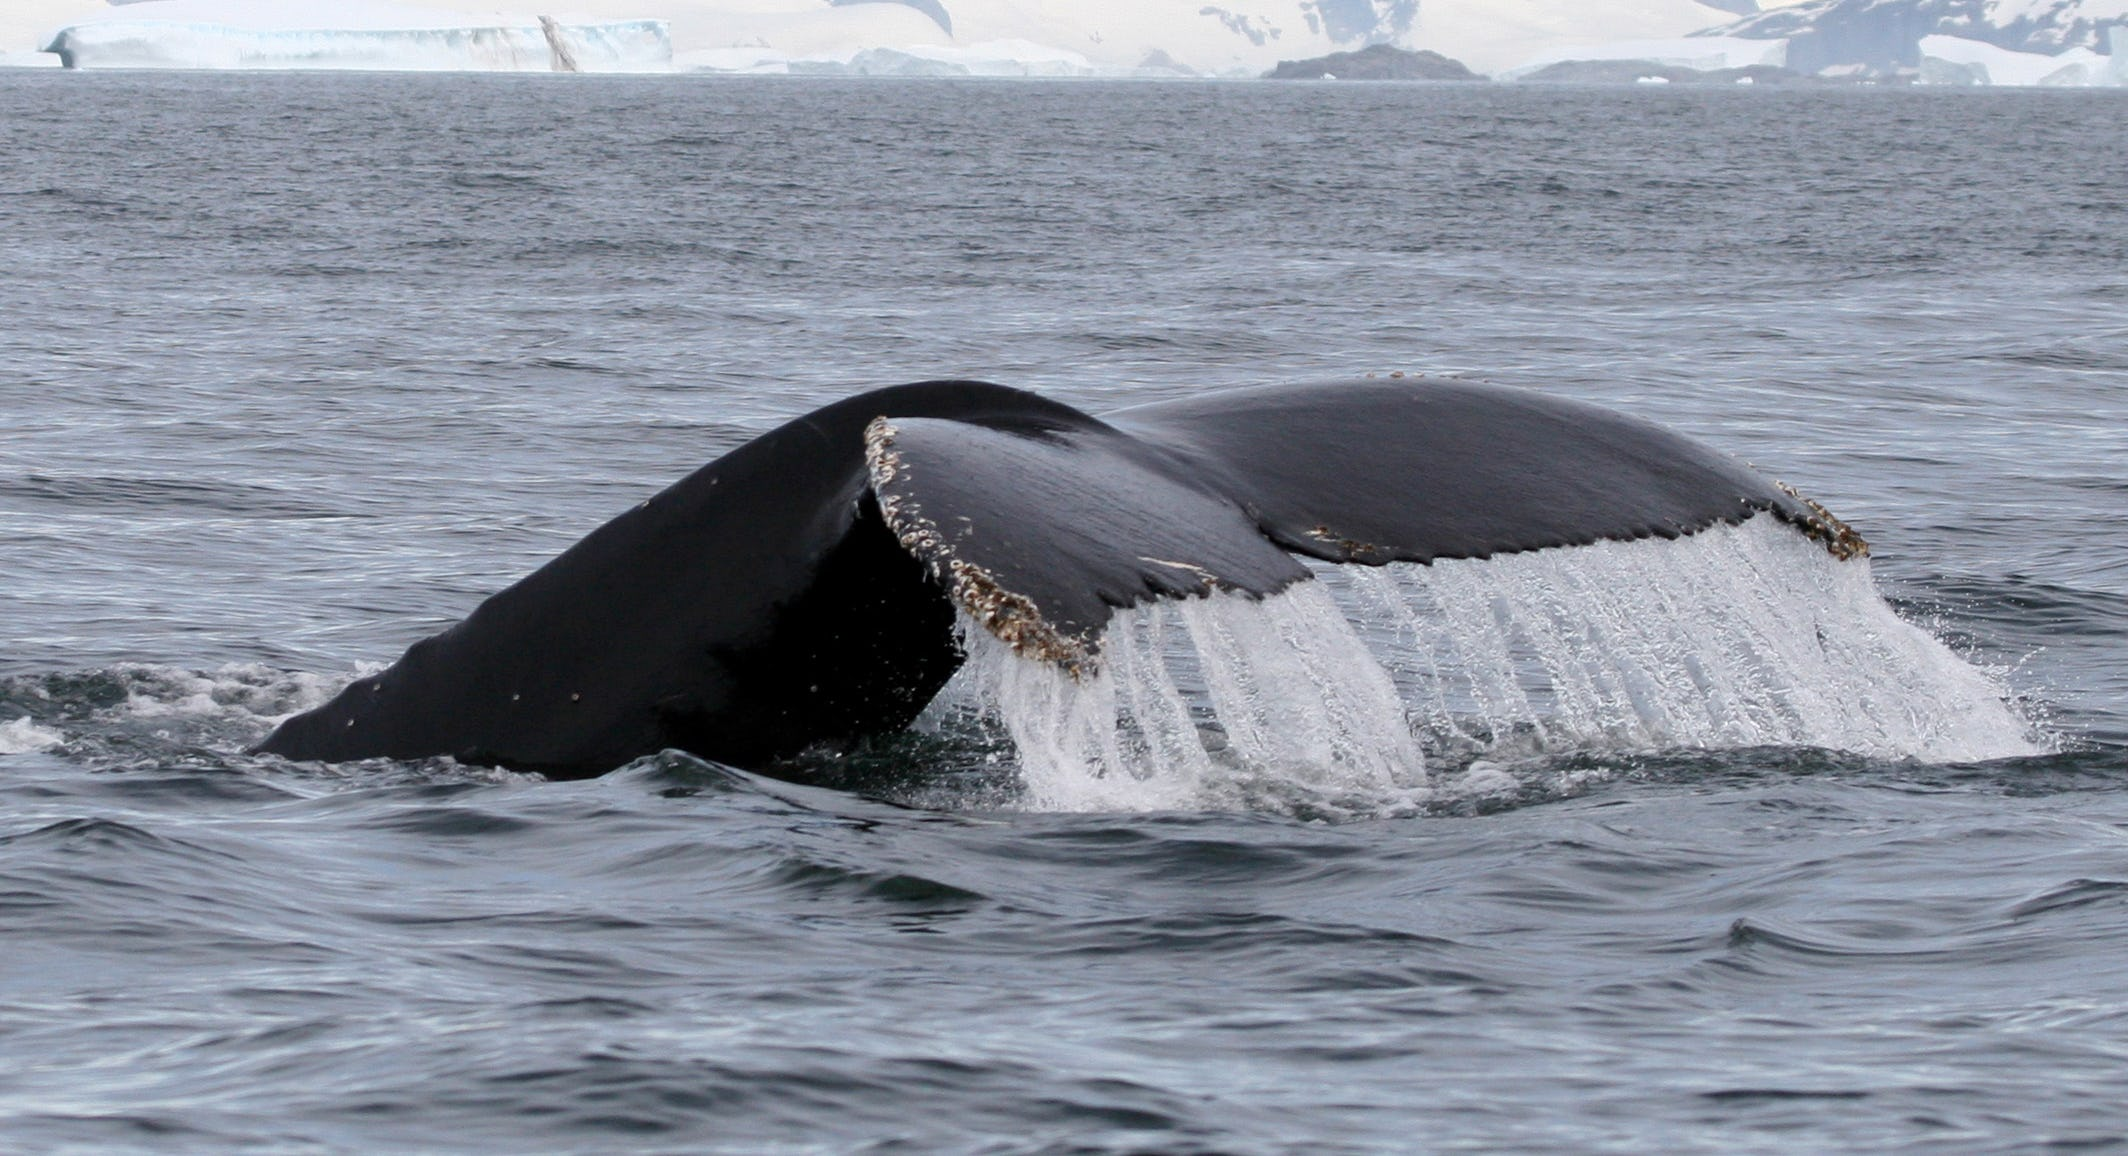 See the whales of Iceland on this whale watching tour of Breiðafjörður Fjord on the Snæfellsnes Peninsula.